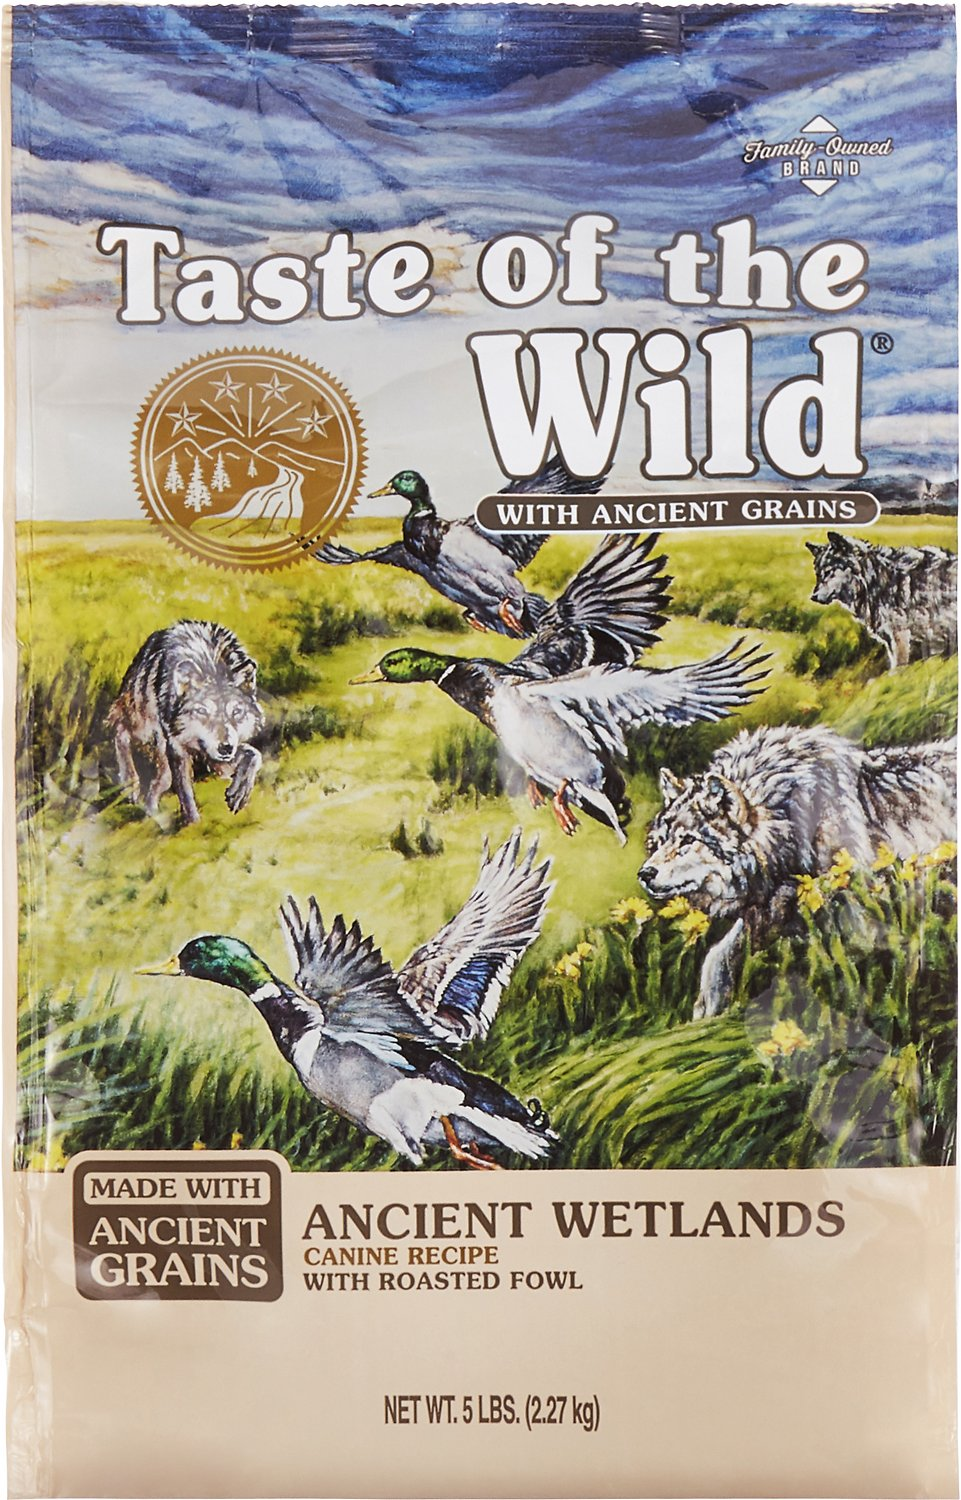 Taste of the Wild Ancient Wetlands with Ancient Grains Dry Dog Food Image